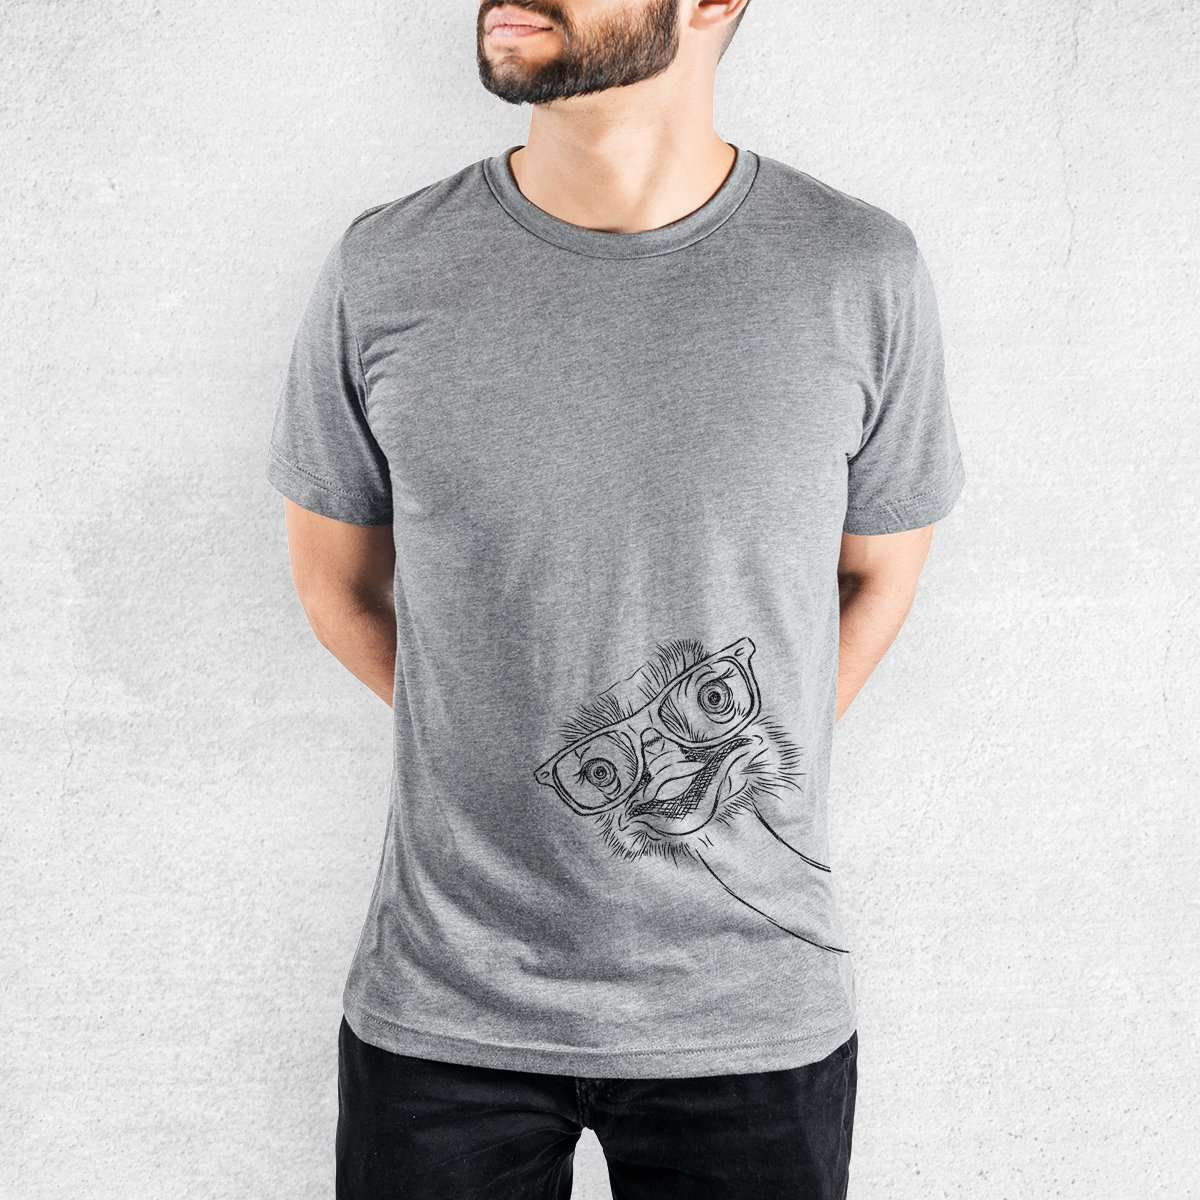 Ozzie the Ostrich - Tri-Blend Unisex Crew Shirt